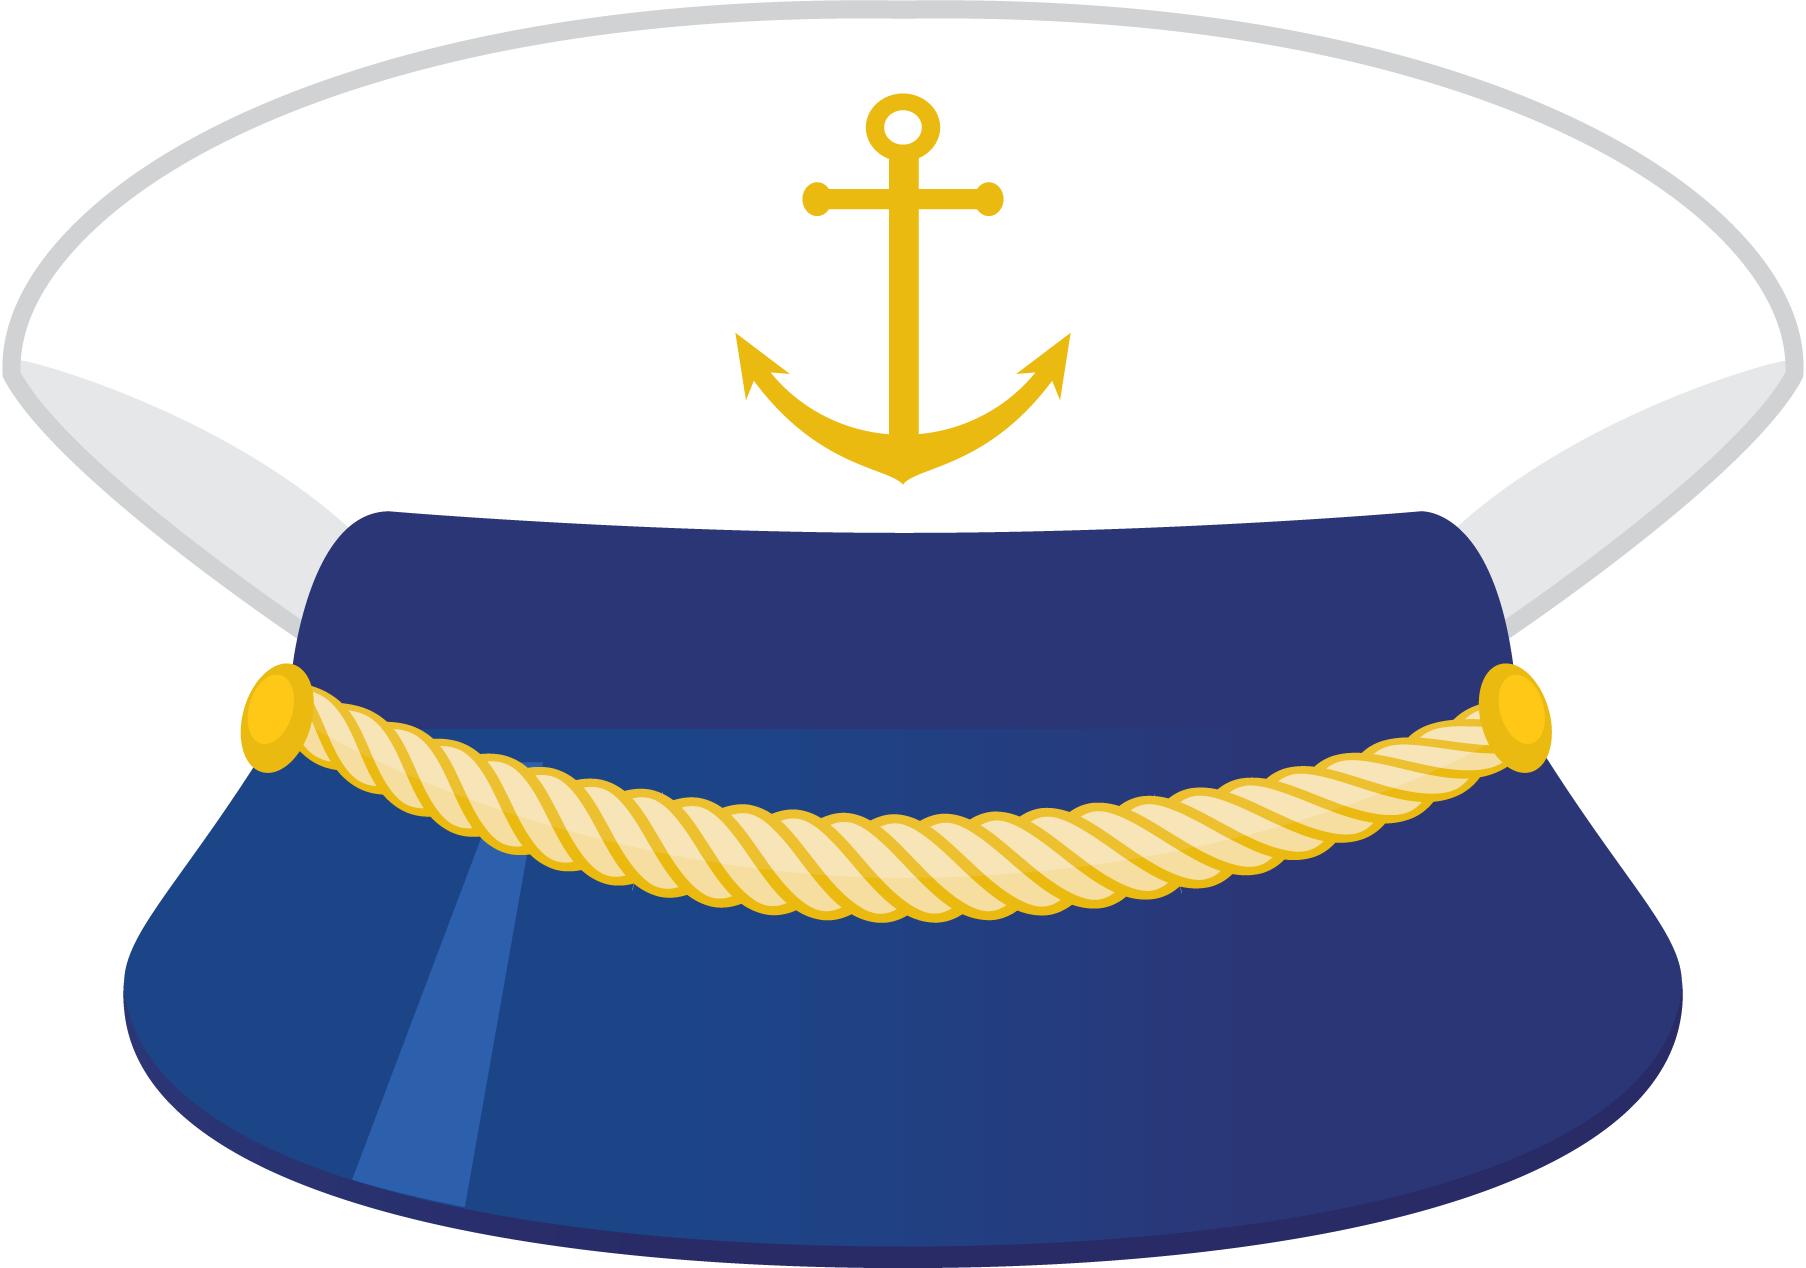 Marine hat clipart graphic royalty free CAPTAINS HAT | navy | Nautical clipart, Nautical marine ... graphic royalty free